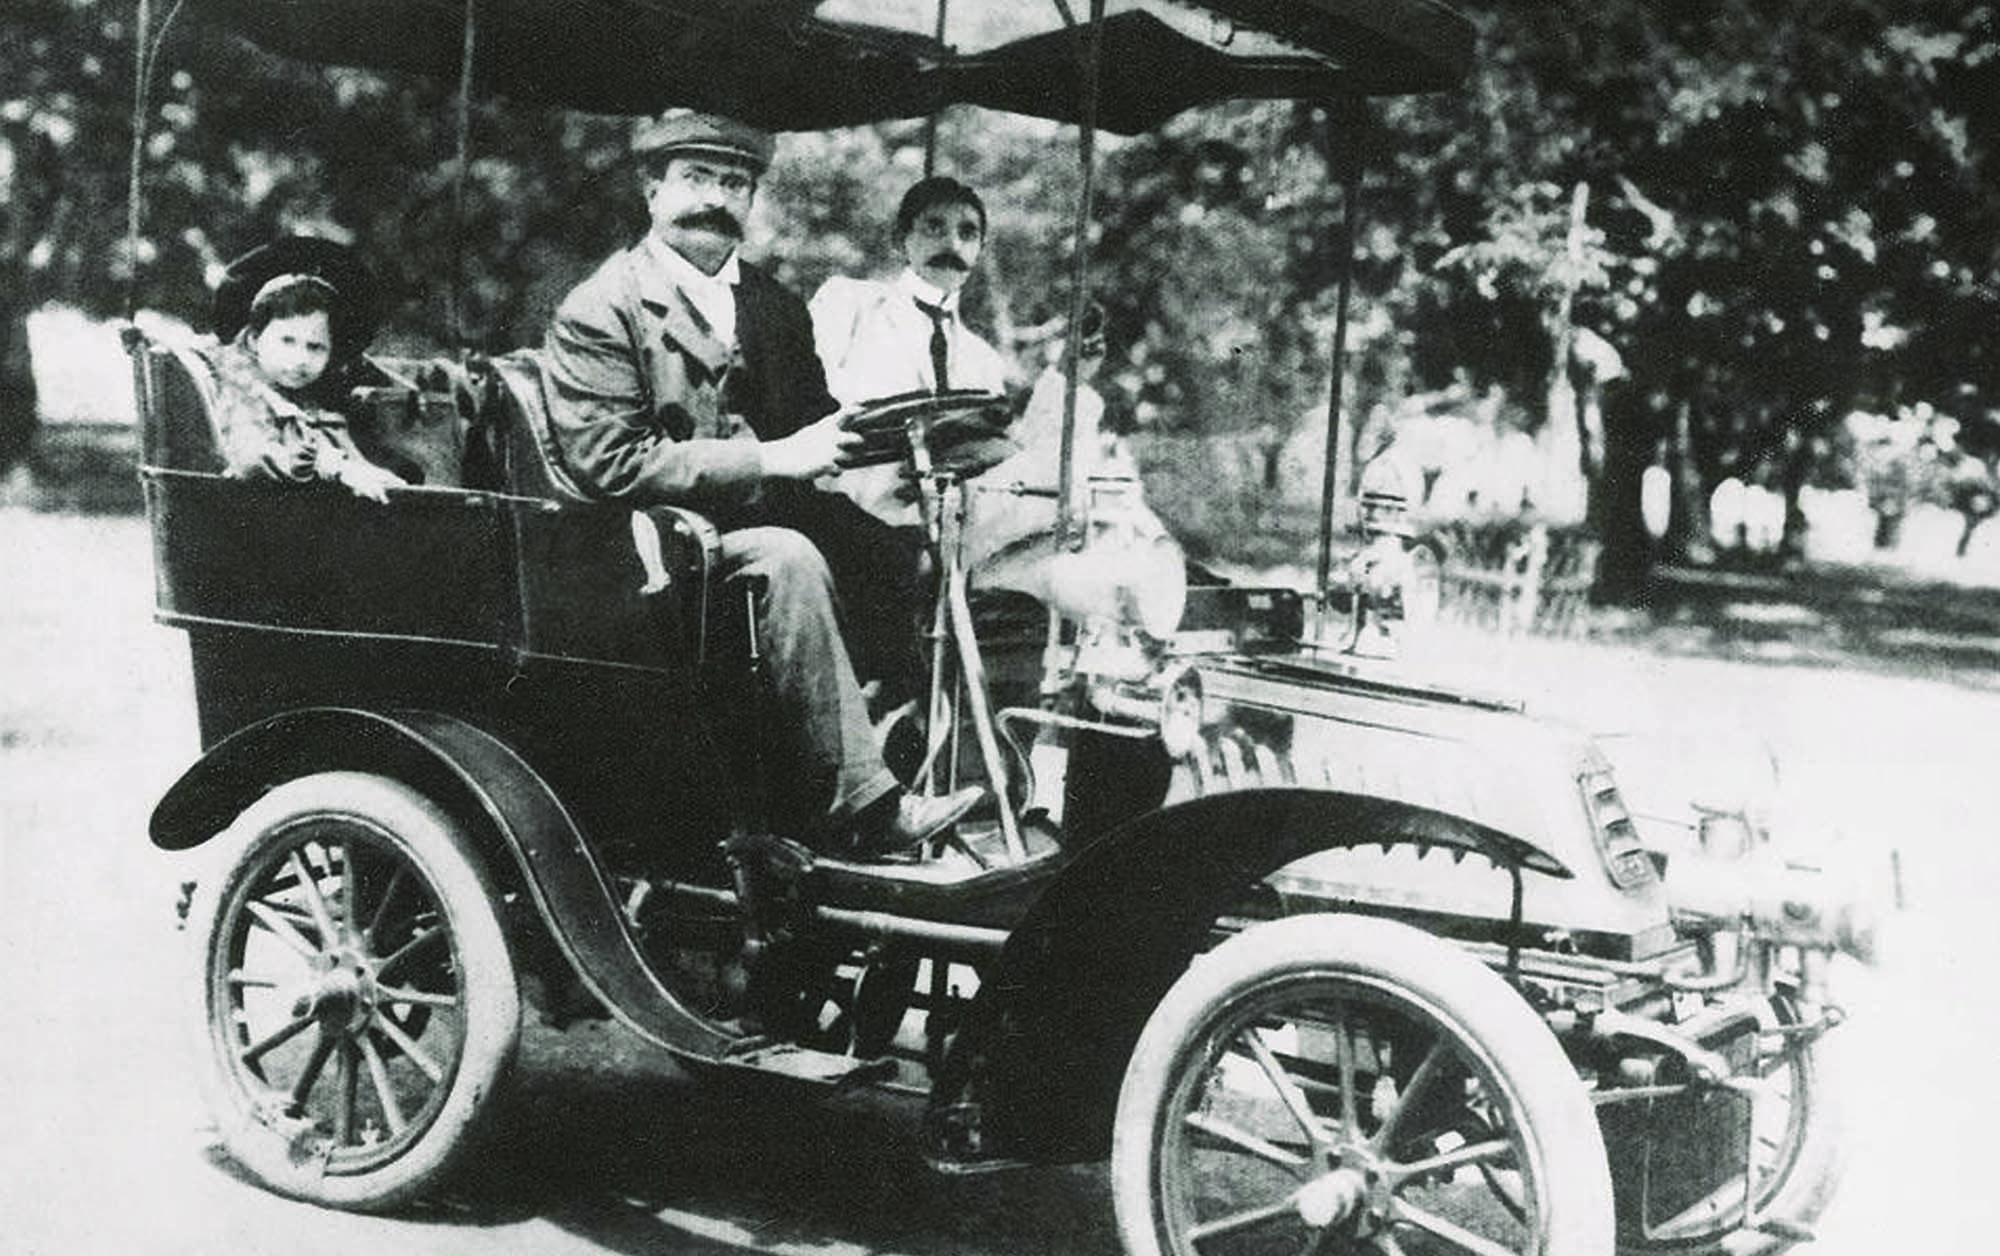 AUTOMOTIVE ELEGANCE: Mr Jinnah seated next to his old-time friend, Pestonjee H. J. Rustomjee, in Bombay in the early 1900s. At the back is Pestonjee's daughter, Homi. Incidentally, Pestonjee H. J. Rustomjee was the maternal uncle of Ardeshir Cowasjee, the esteemed Dawn columnist.